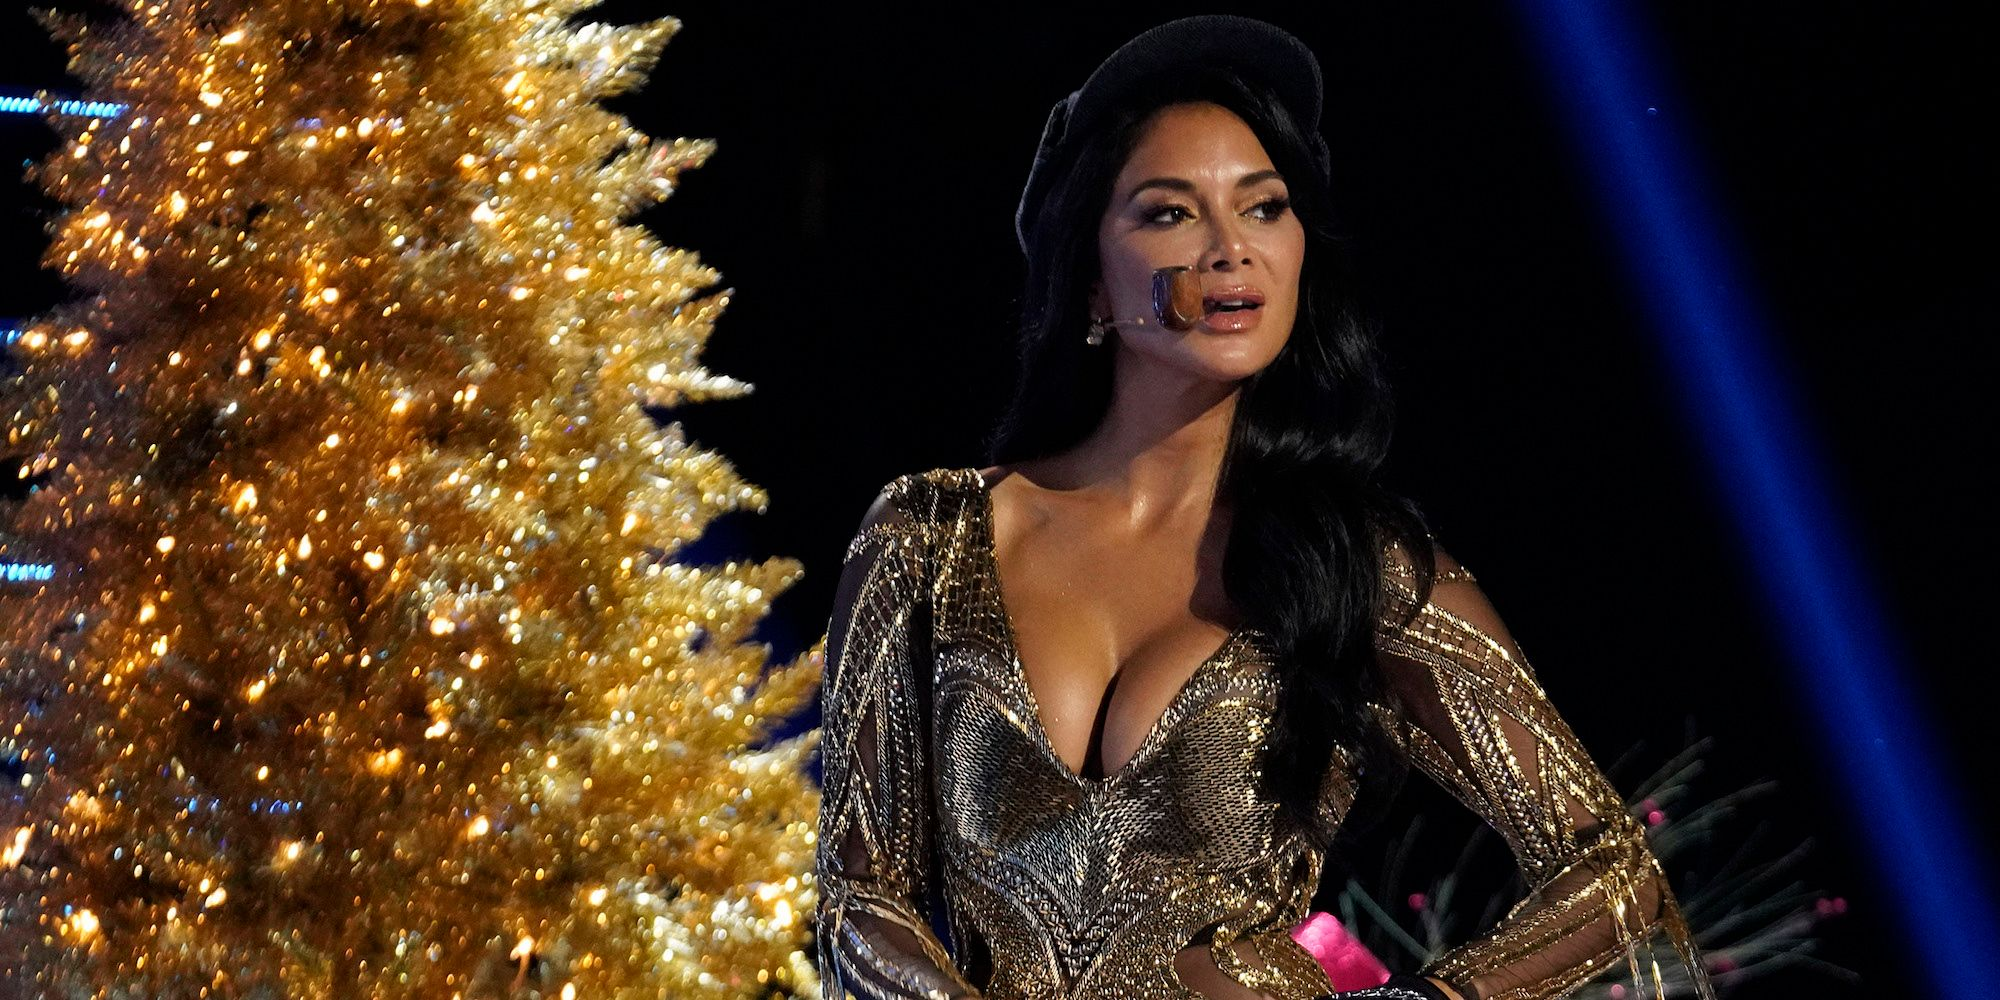 Masked Singer: What We Know About Nicole Scherzinger's Last LA Home